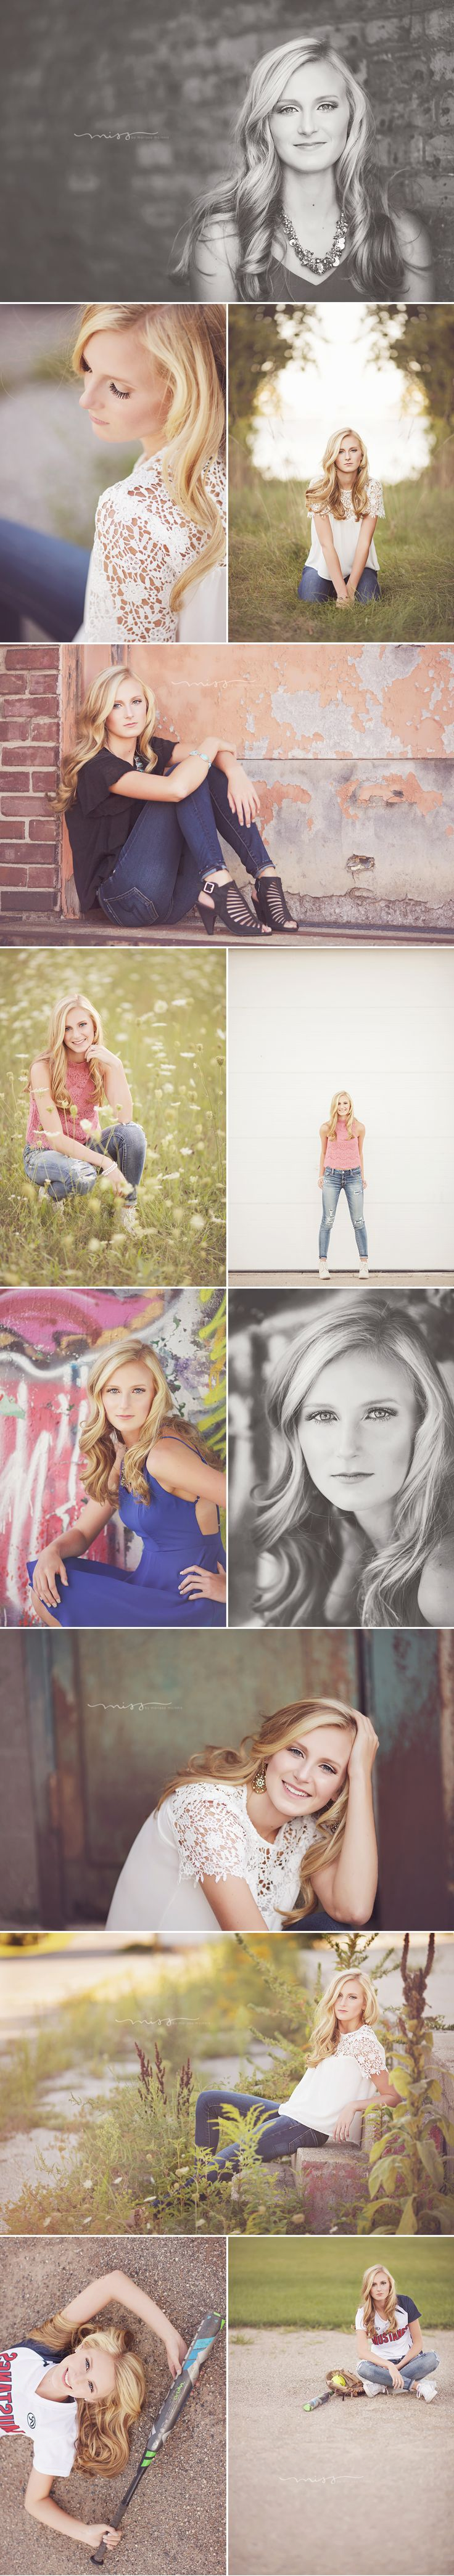 Mid Michigan Senior Photo | Poses | Miss by Marissa » The Ultimate Senior Photography Experience